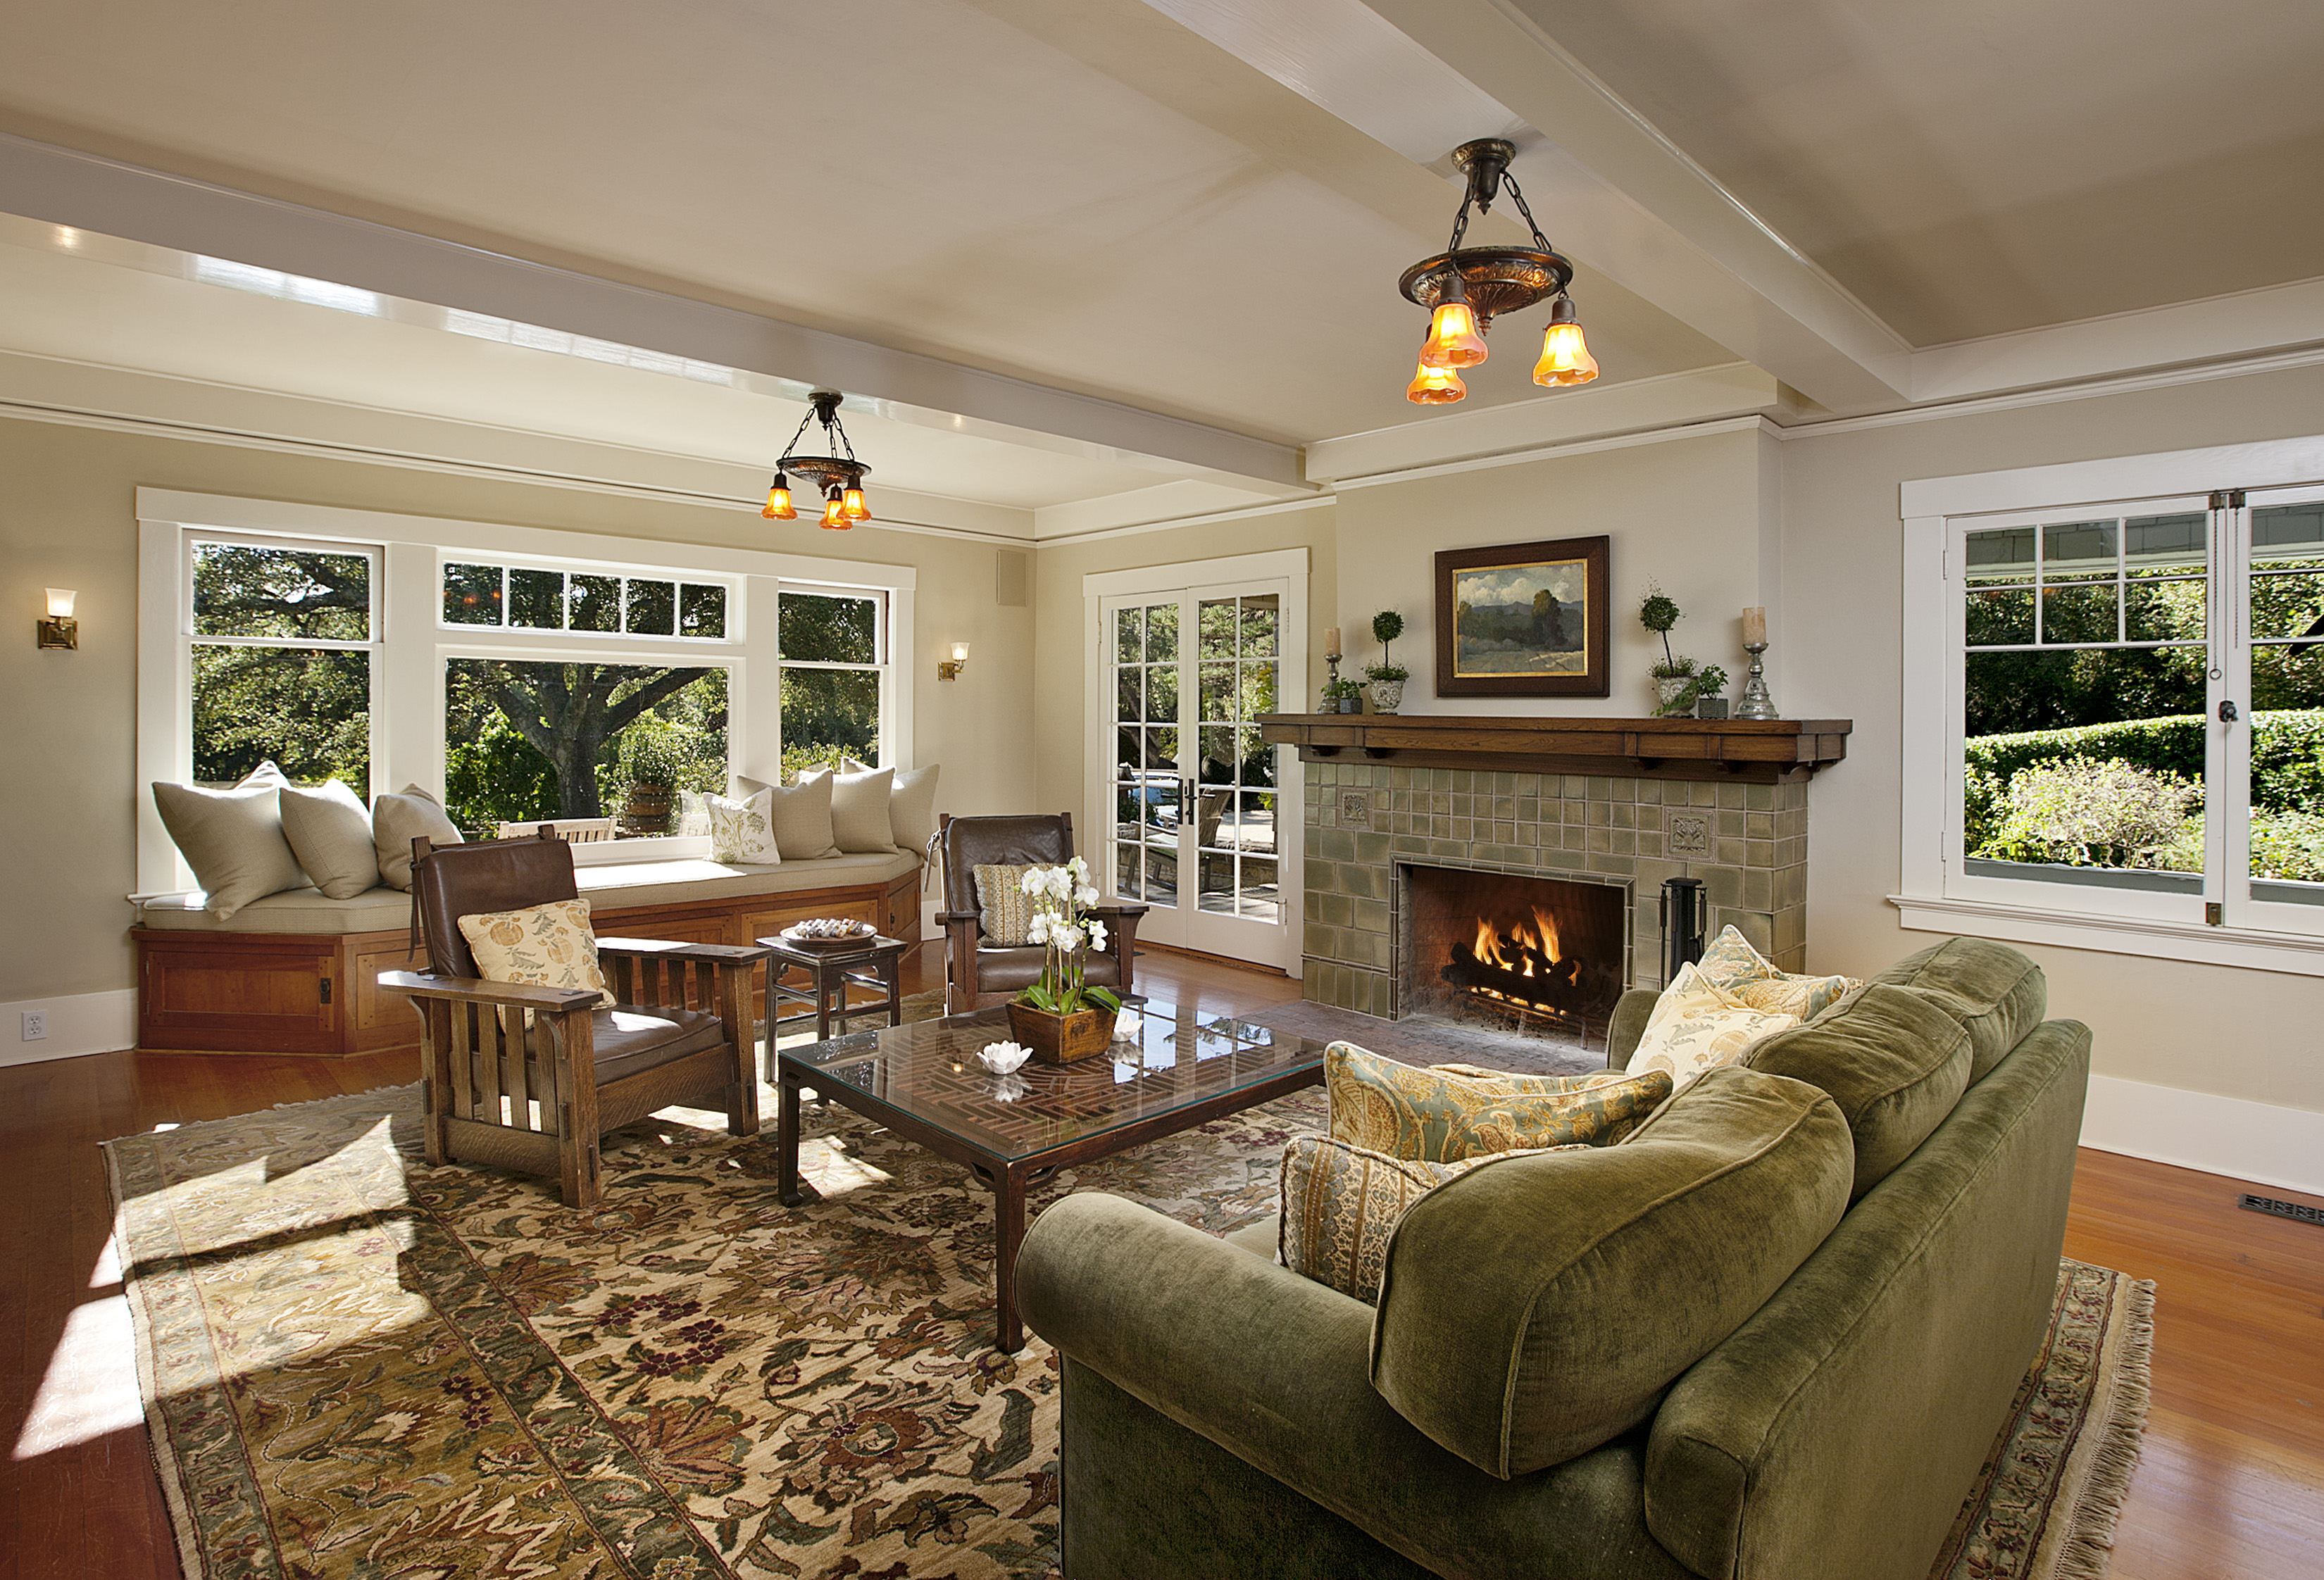 Popular home styles for 2012 montecito real estate for Home interior living room